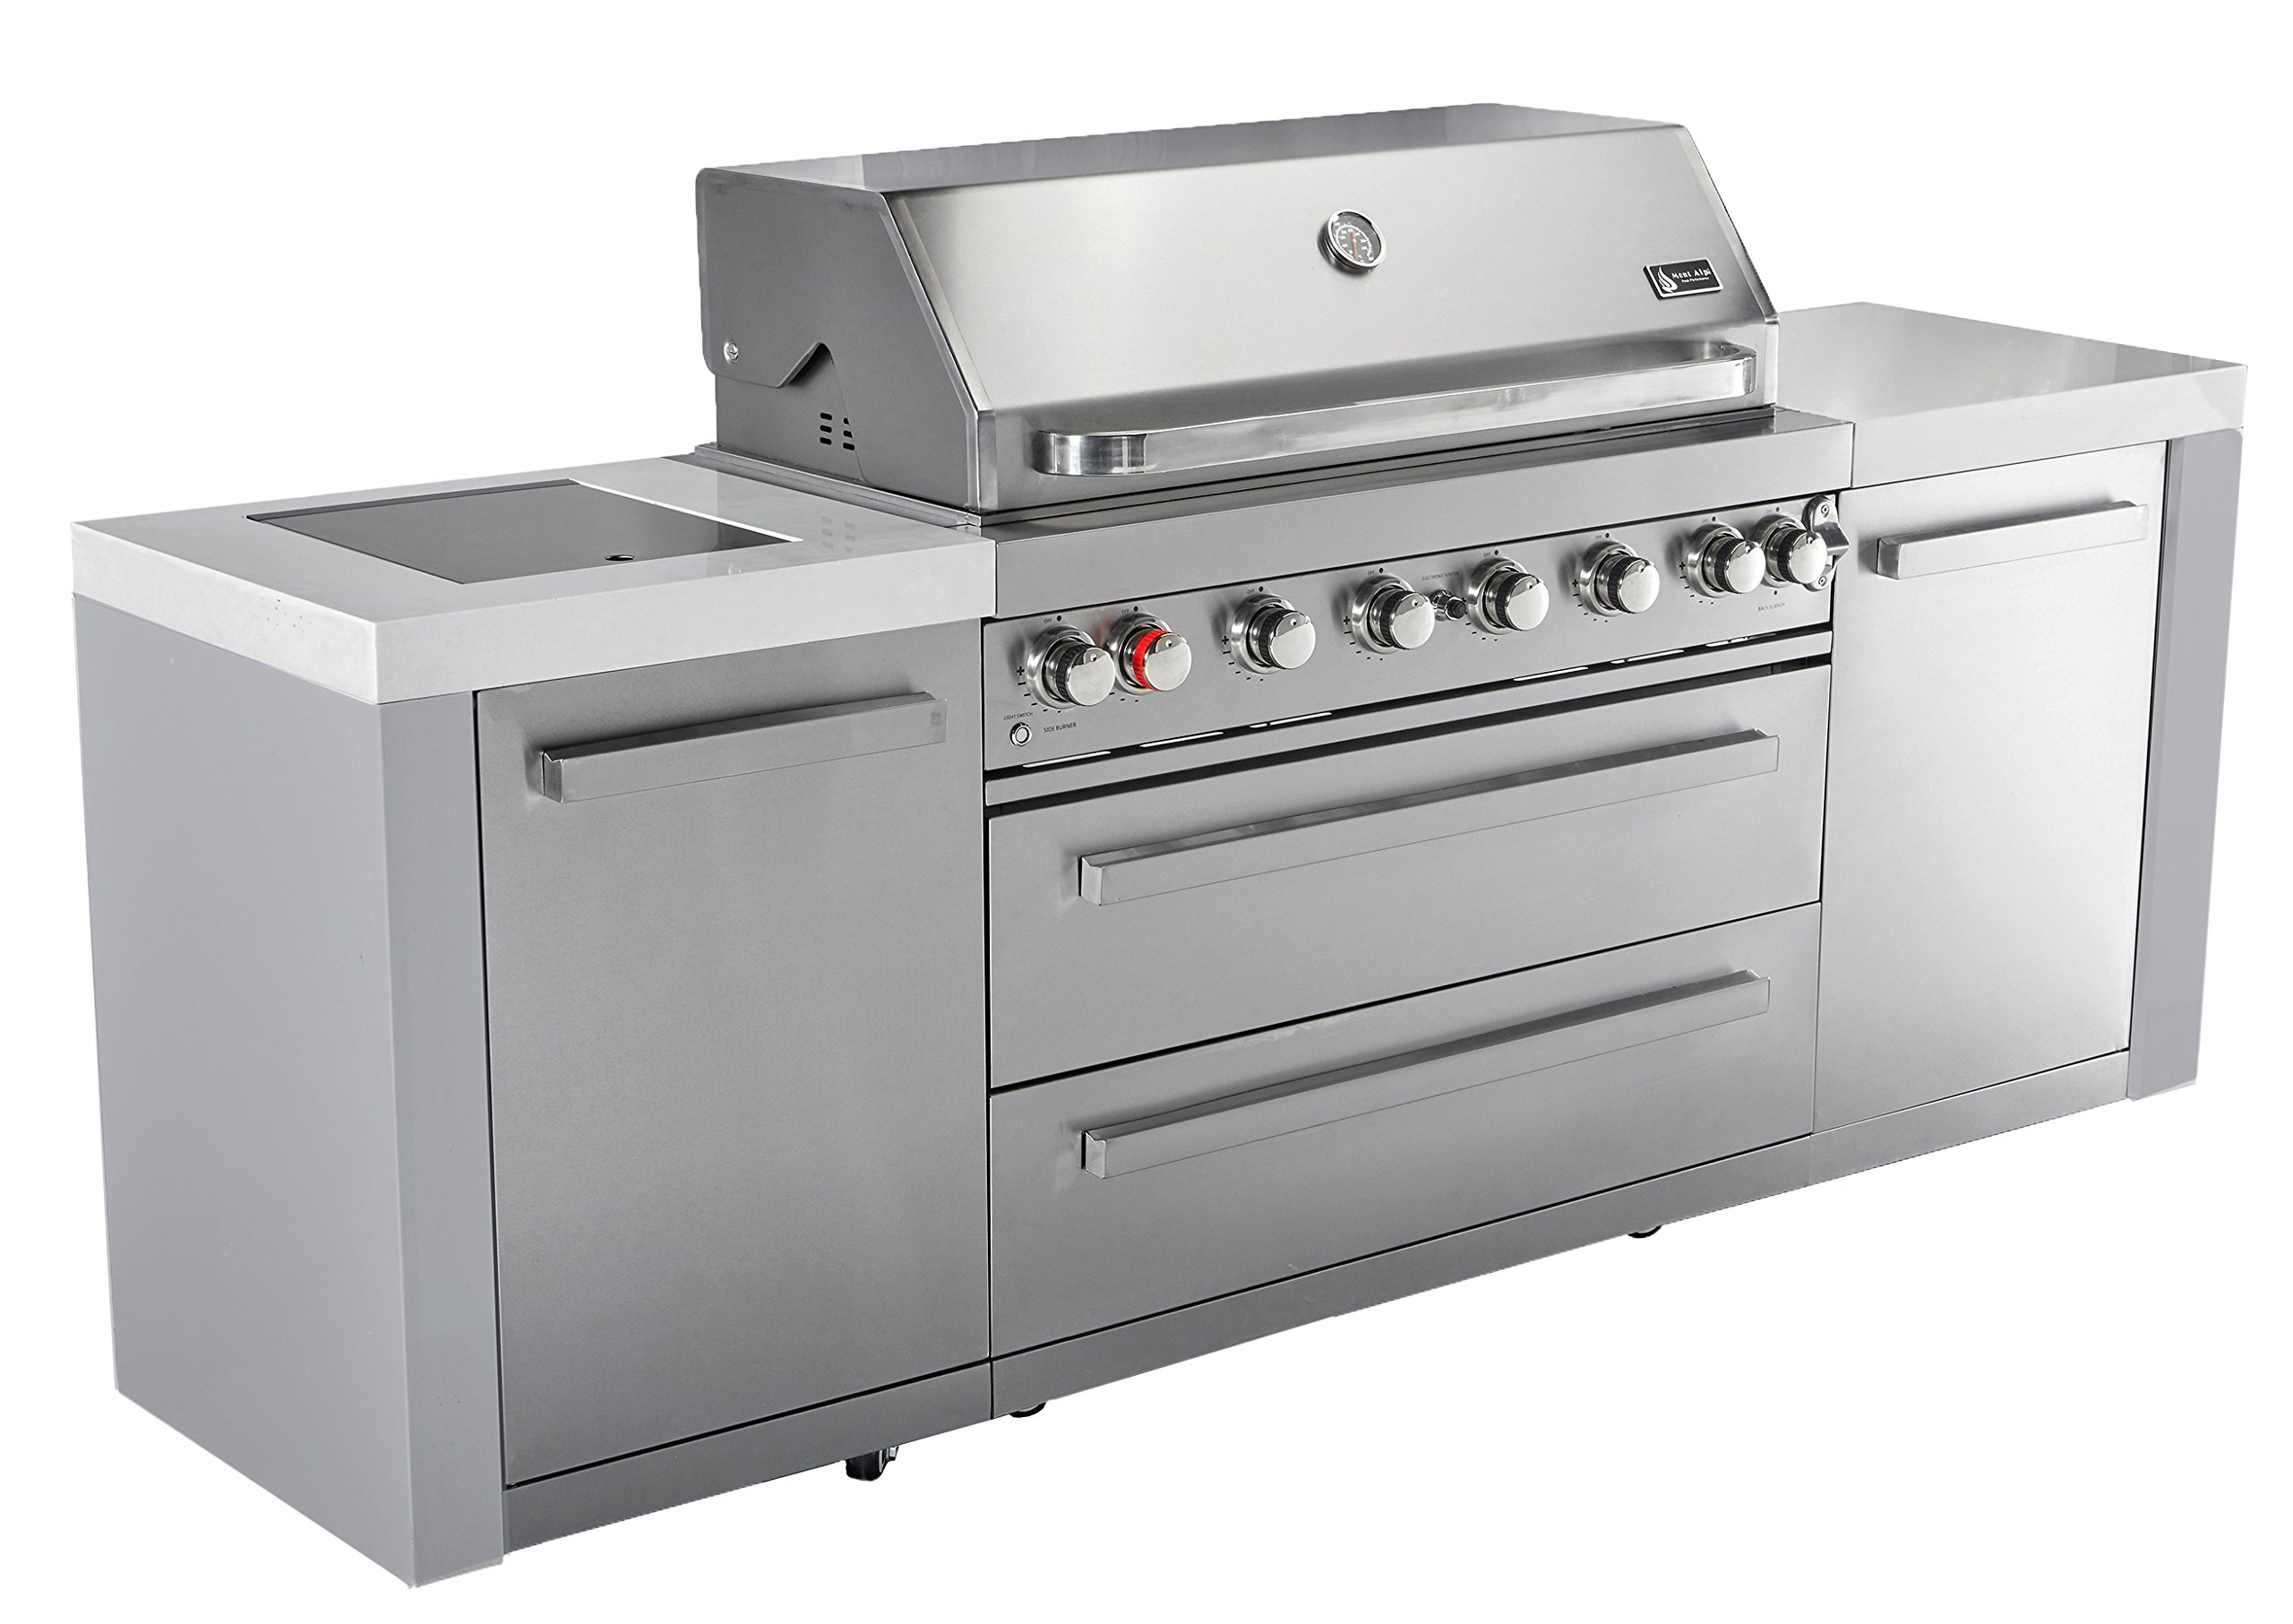 Mont Alpi MAI805 44'' Outdoor Barbeque Island, 47.00 x 20.00 x 93.00 inches, Stainless Steel by Mont Alpi (Image #4)